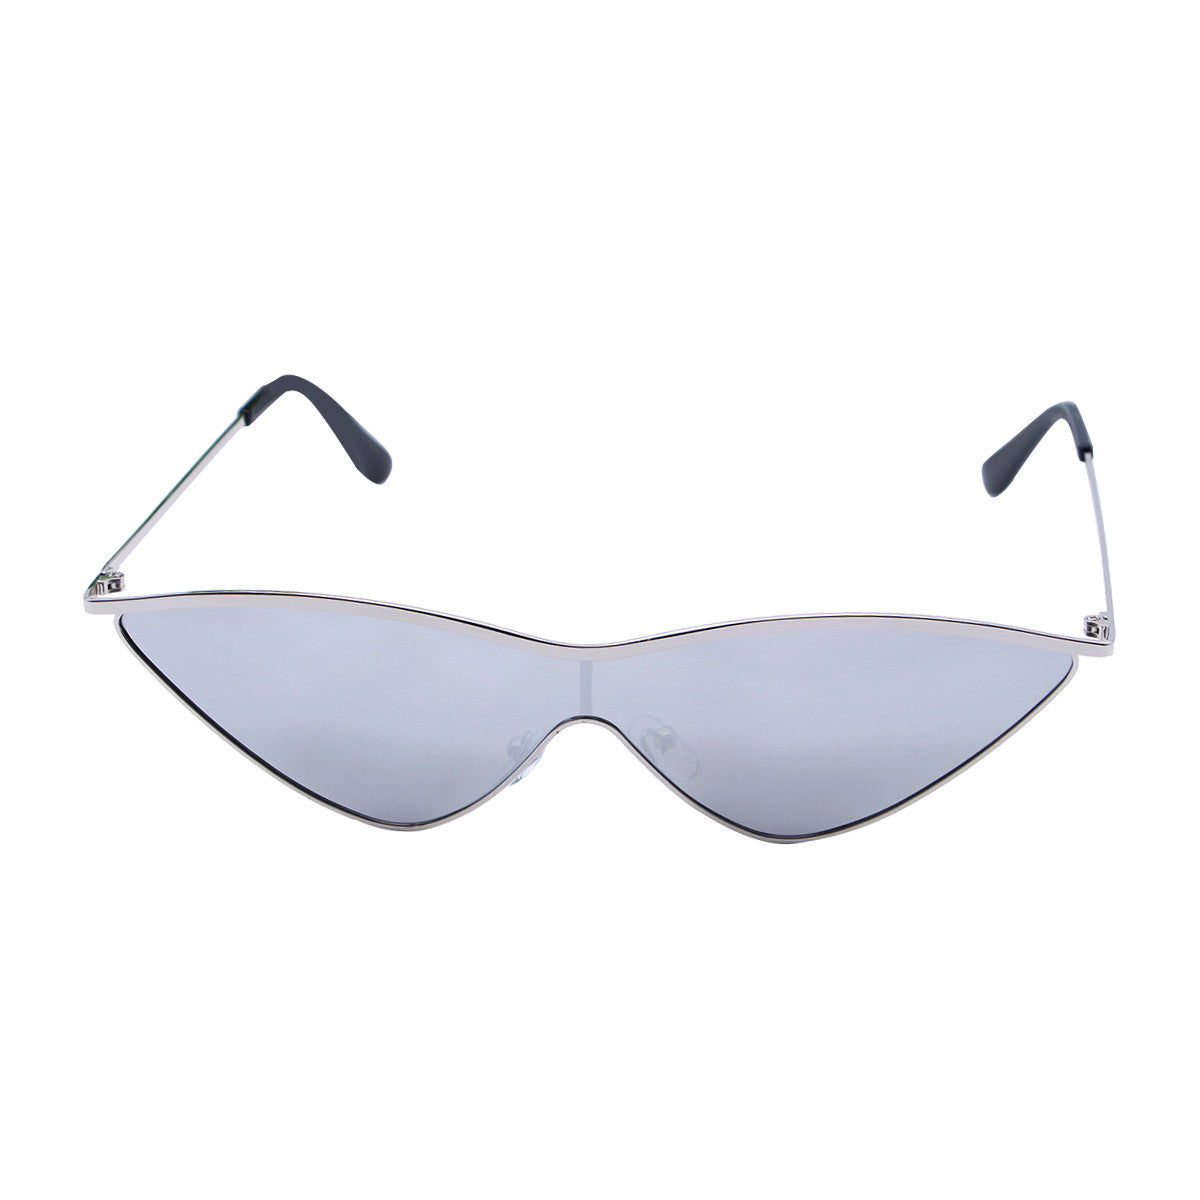 Women's Stylish Triangle Lens Cat Eye Sunglasses with Metal Frame with Colored Mirror - Slappable Shades